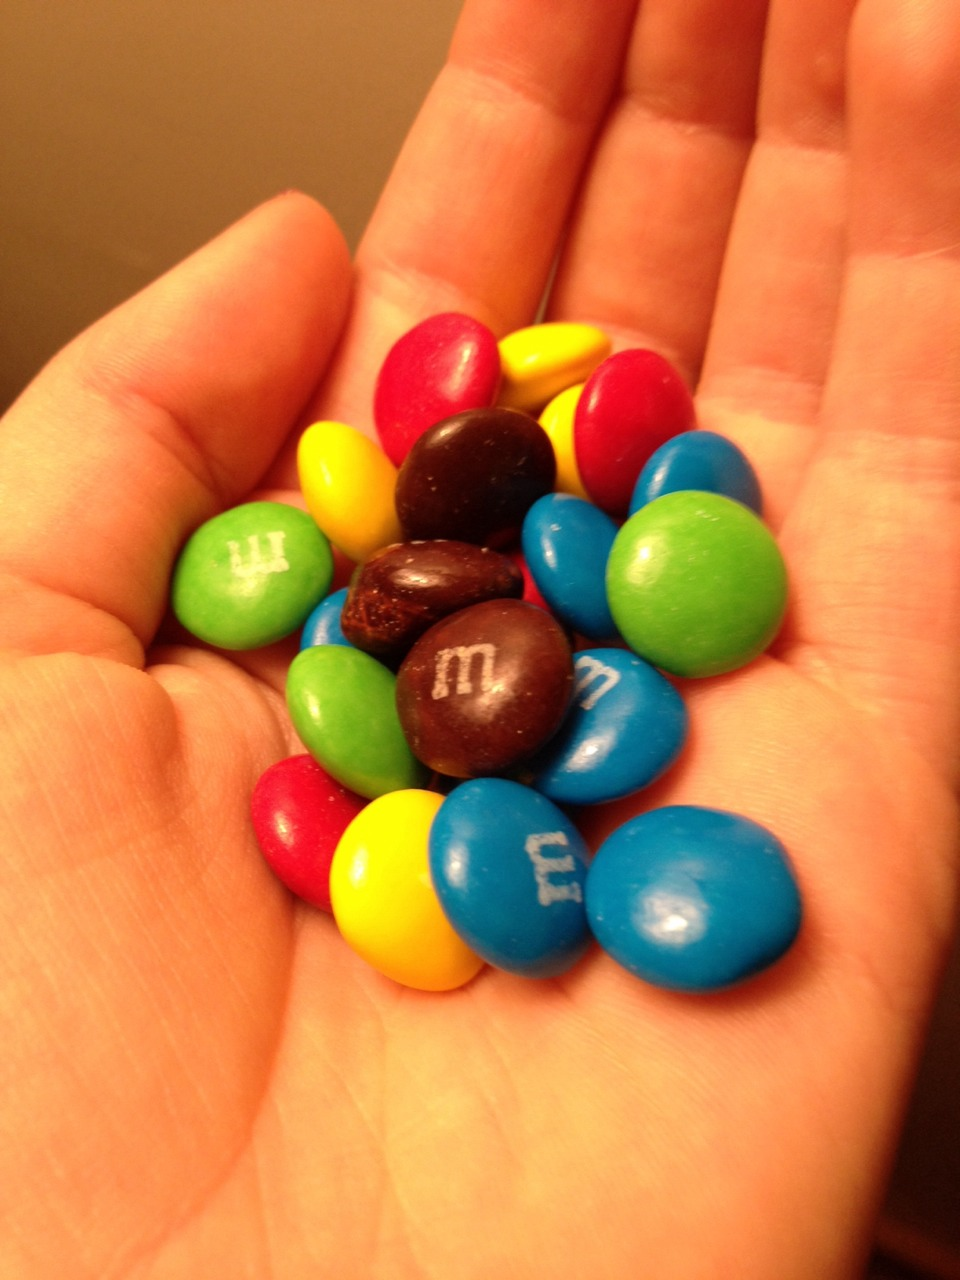 Buy some m&ms and put them in a bowl. Put them in the microwave for 45 seconds. The inside melts but the outside doesn't. Enjoy!